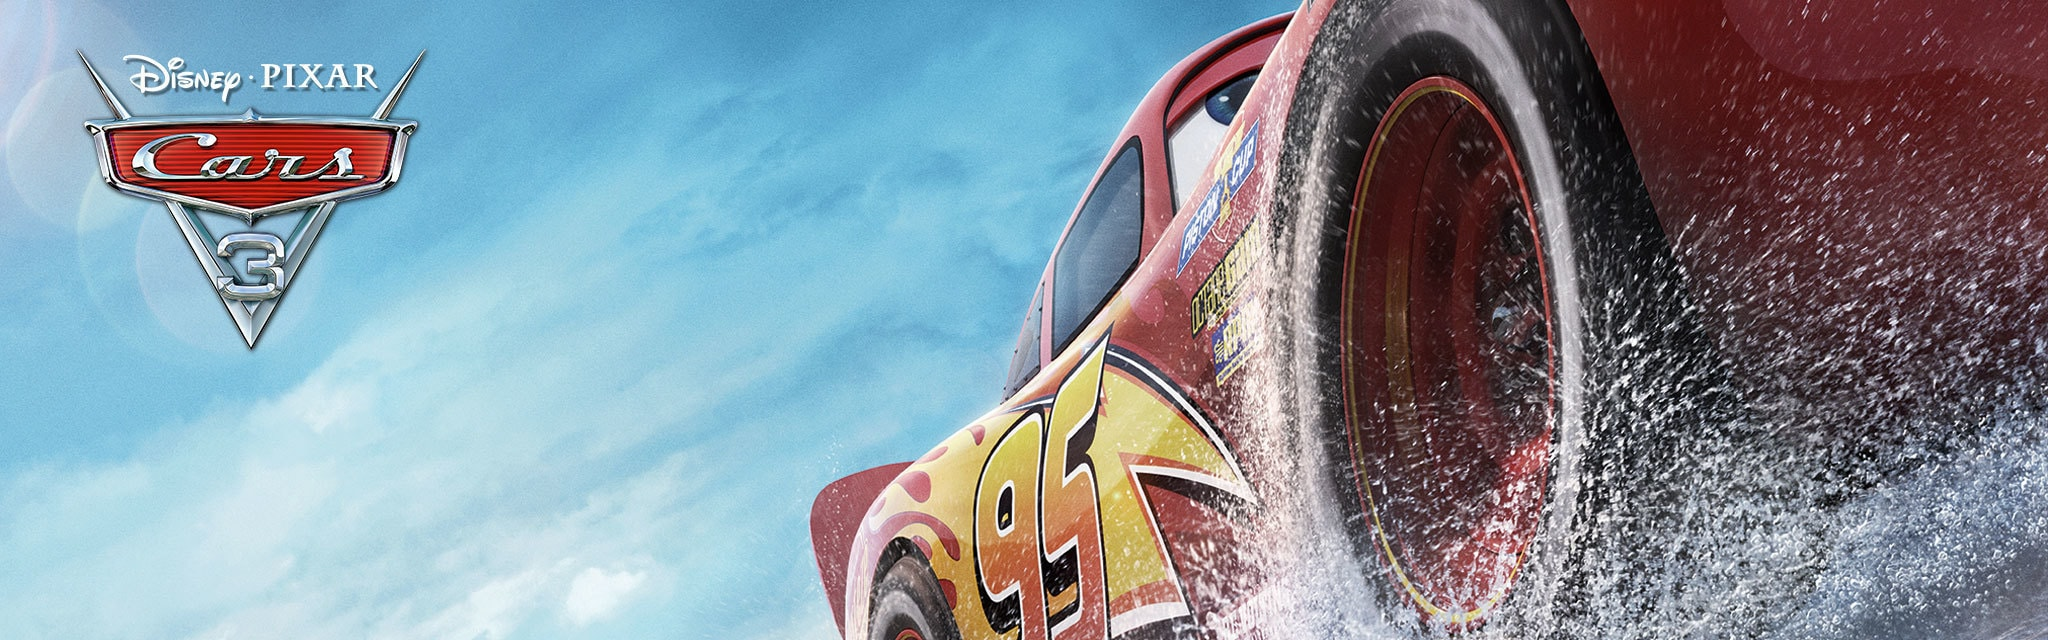 Cars 3 Get Showtimes - Hero